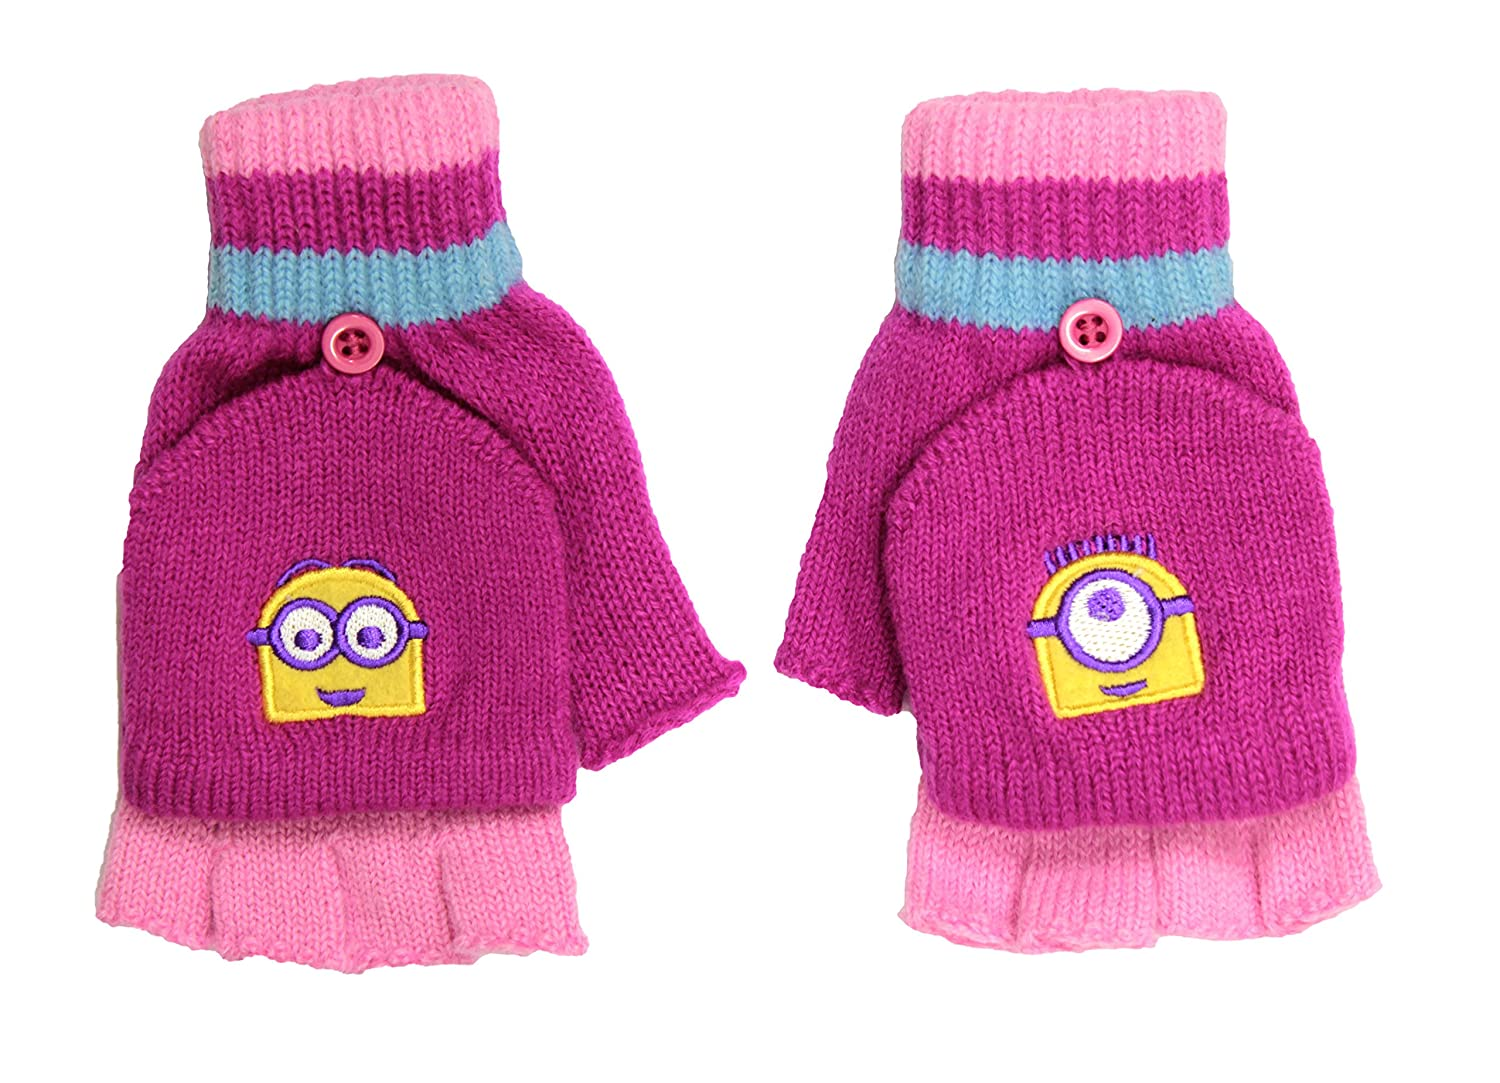 Girls Despicable Me Minions 2 In 1 Fingerless Gloves Ages 8-12 Years